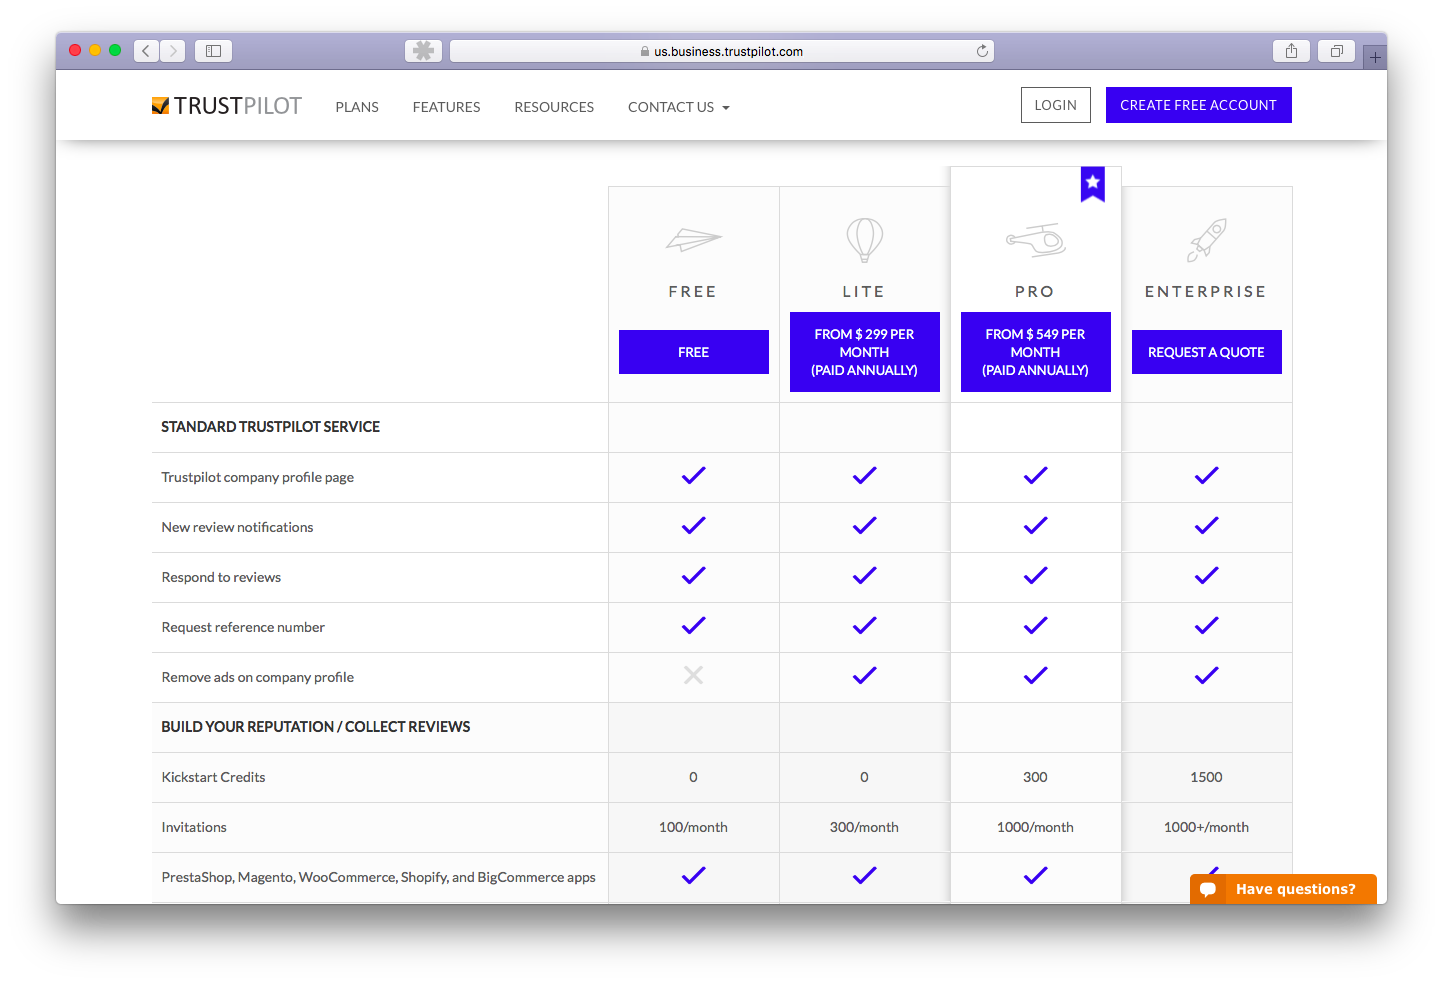 Our beautiful and useful new pricing page, designed by Fei Huang